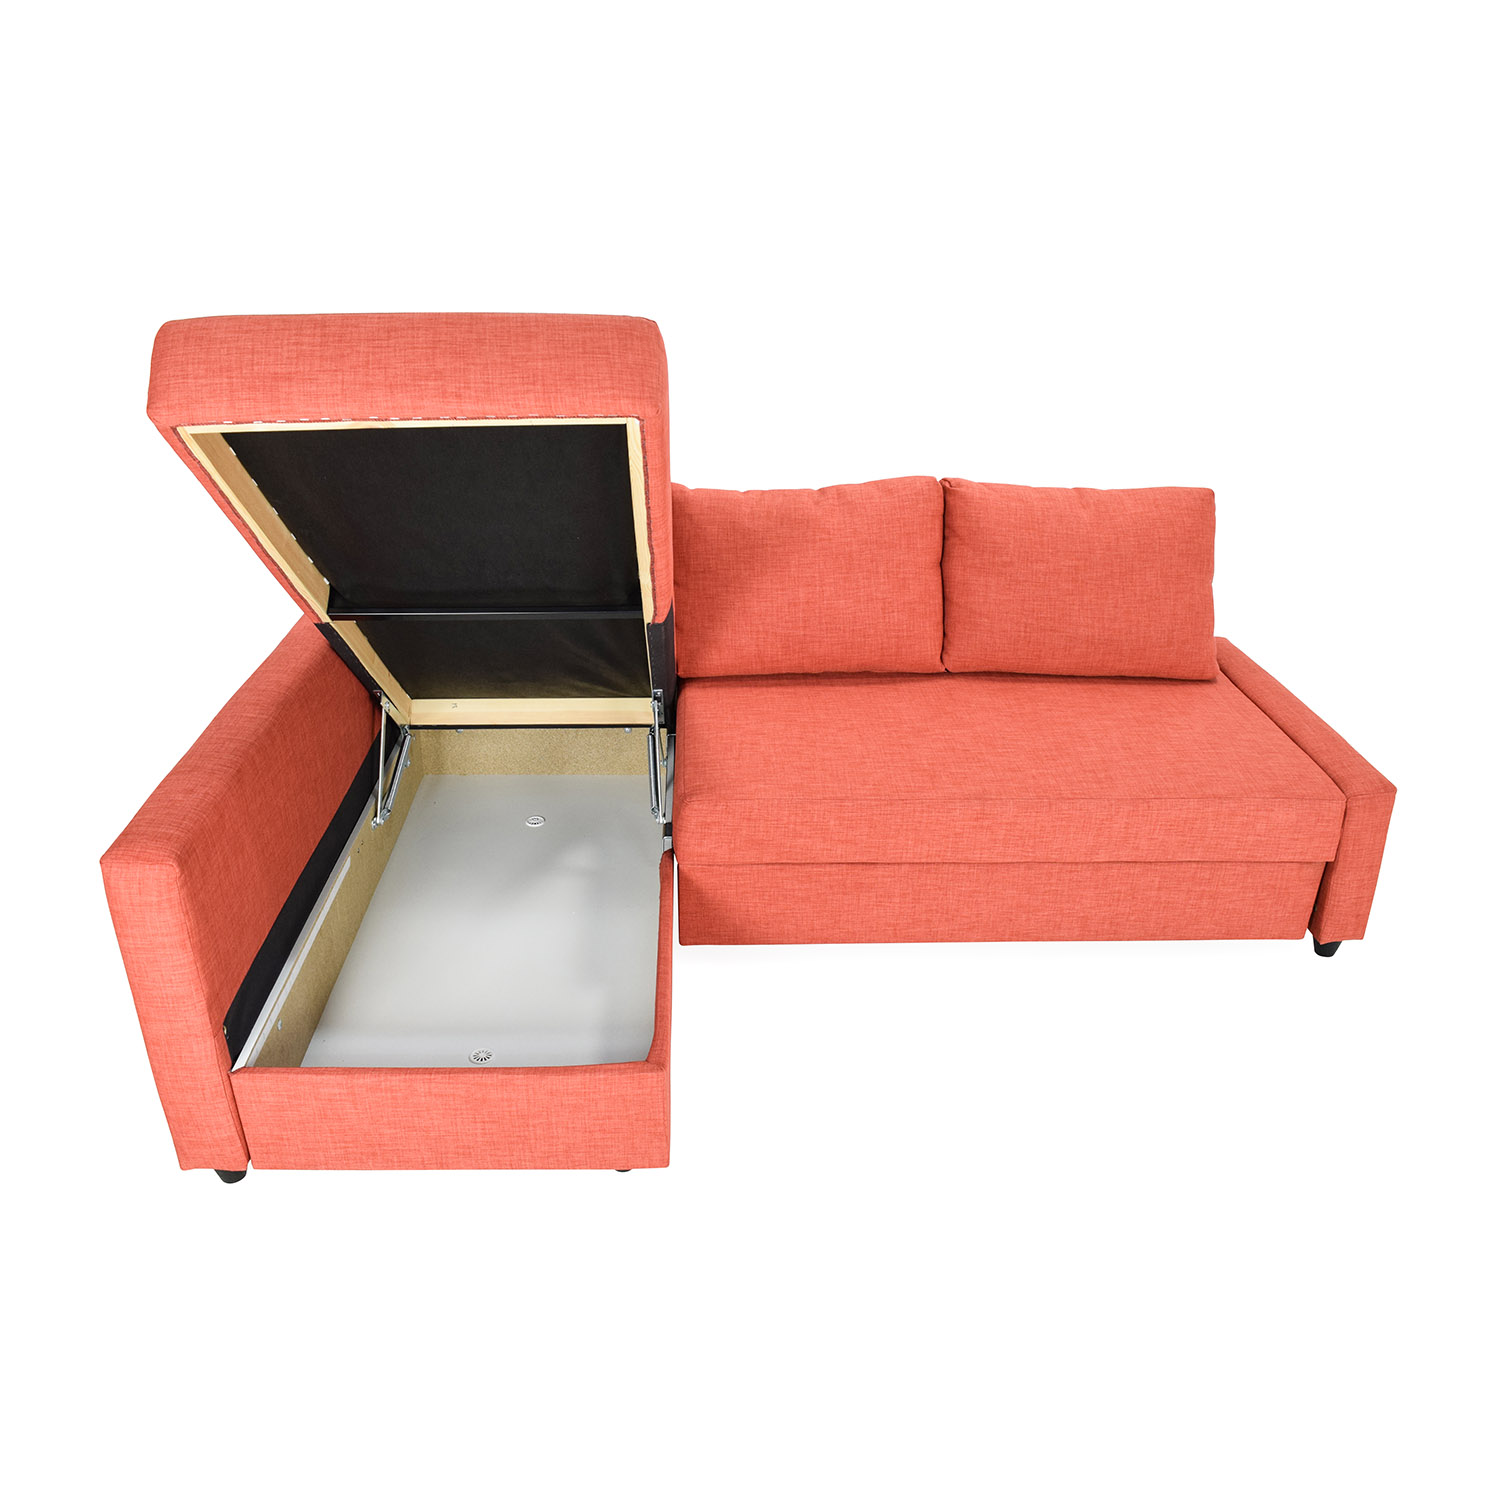 sofa seconds dfs black leather recliner chaise design orange best extrieur metal